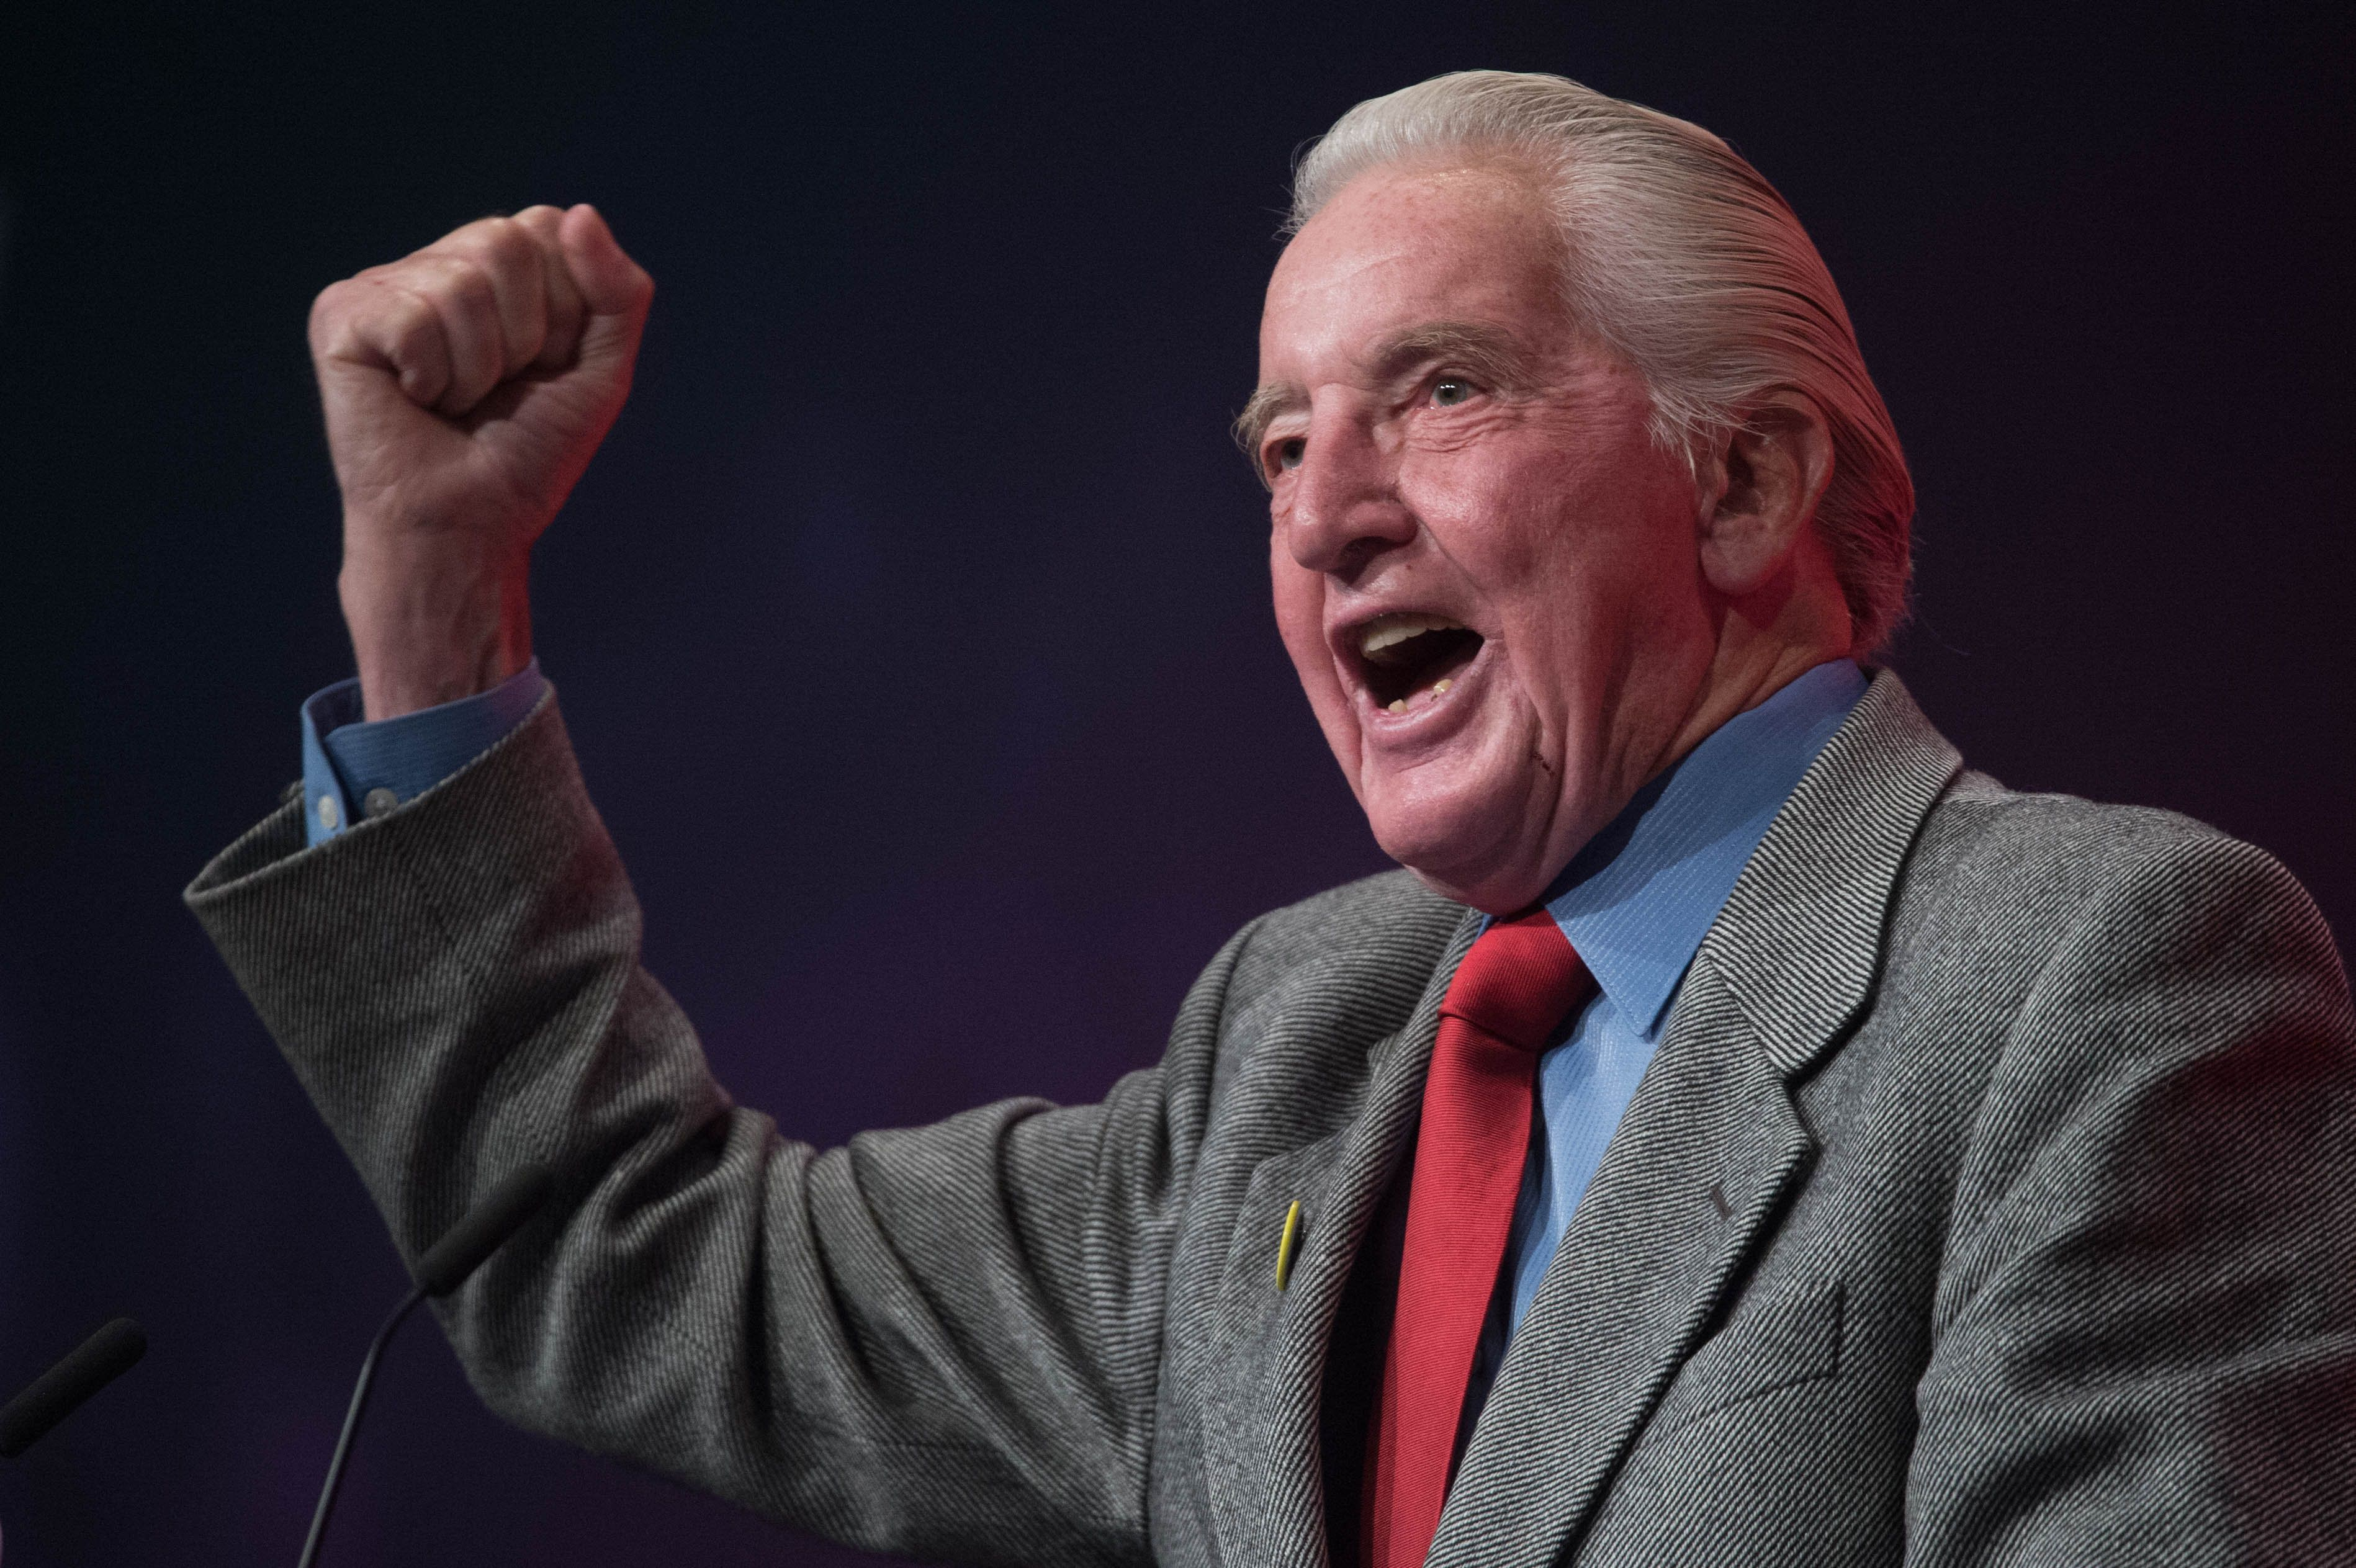 Labour MP Dennis Skinner Calls Donald Trump A 'Fascist' In The House Of